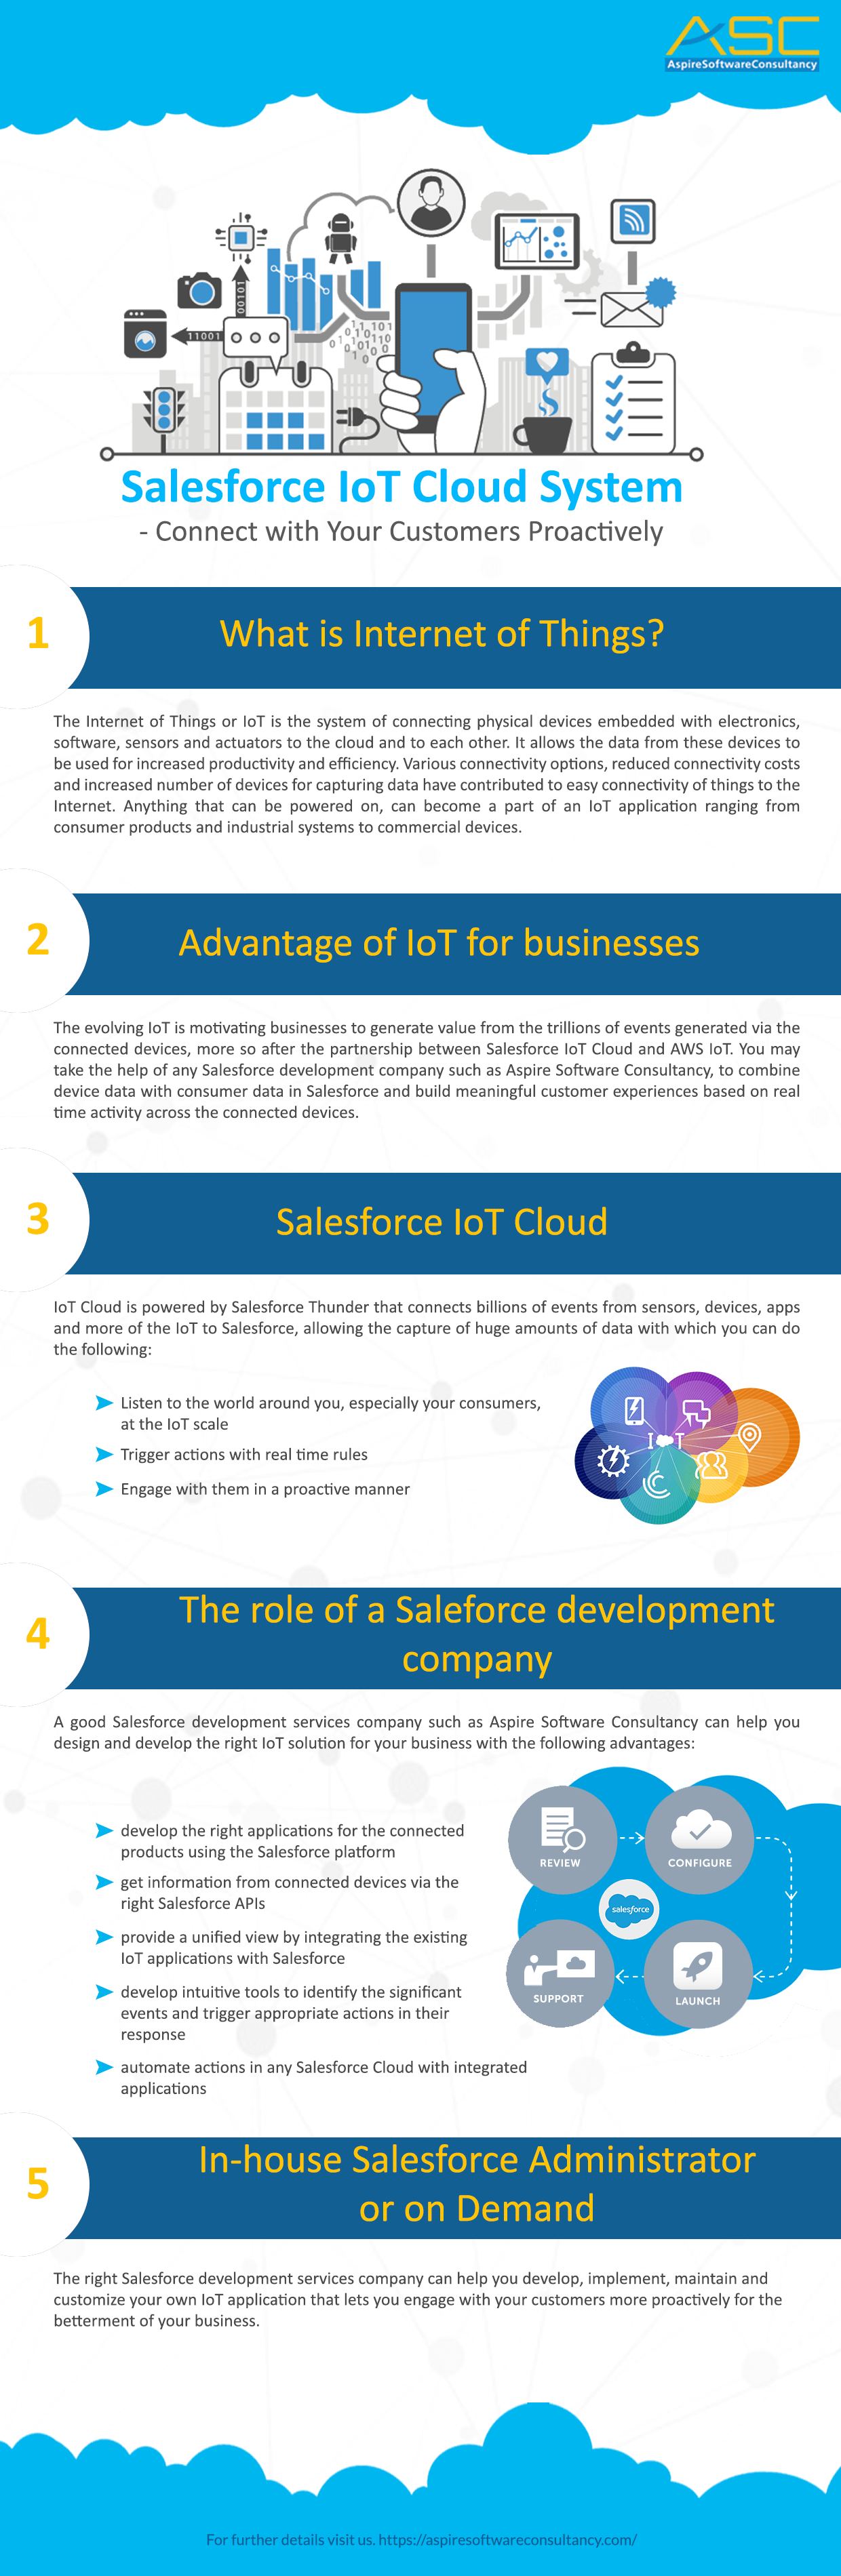 Salesforce IoT Cloud System - Connect With Your Customers Proactively